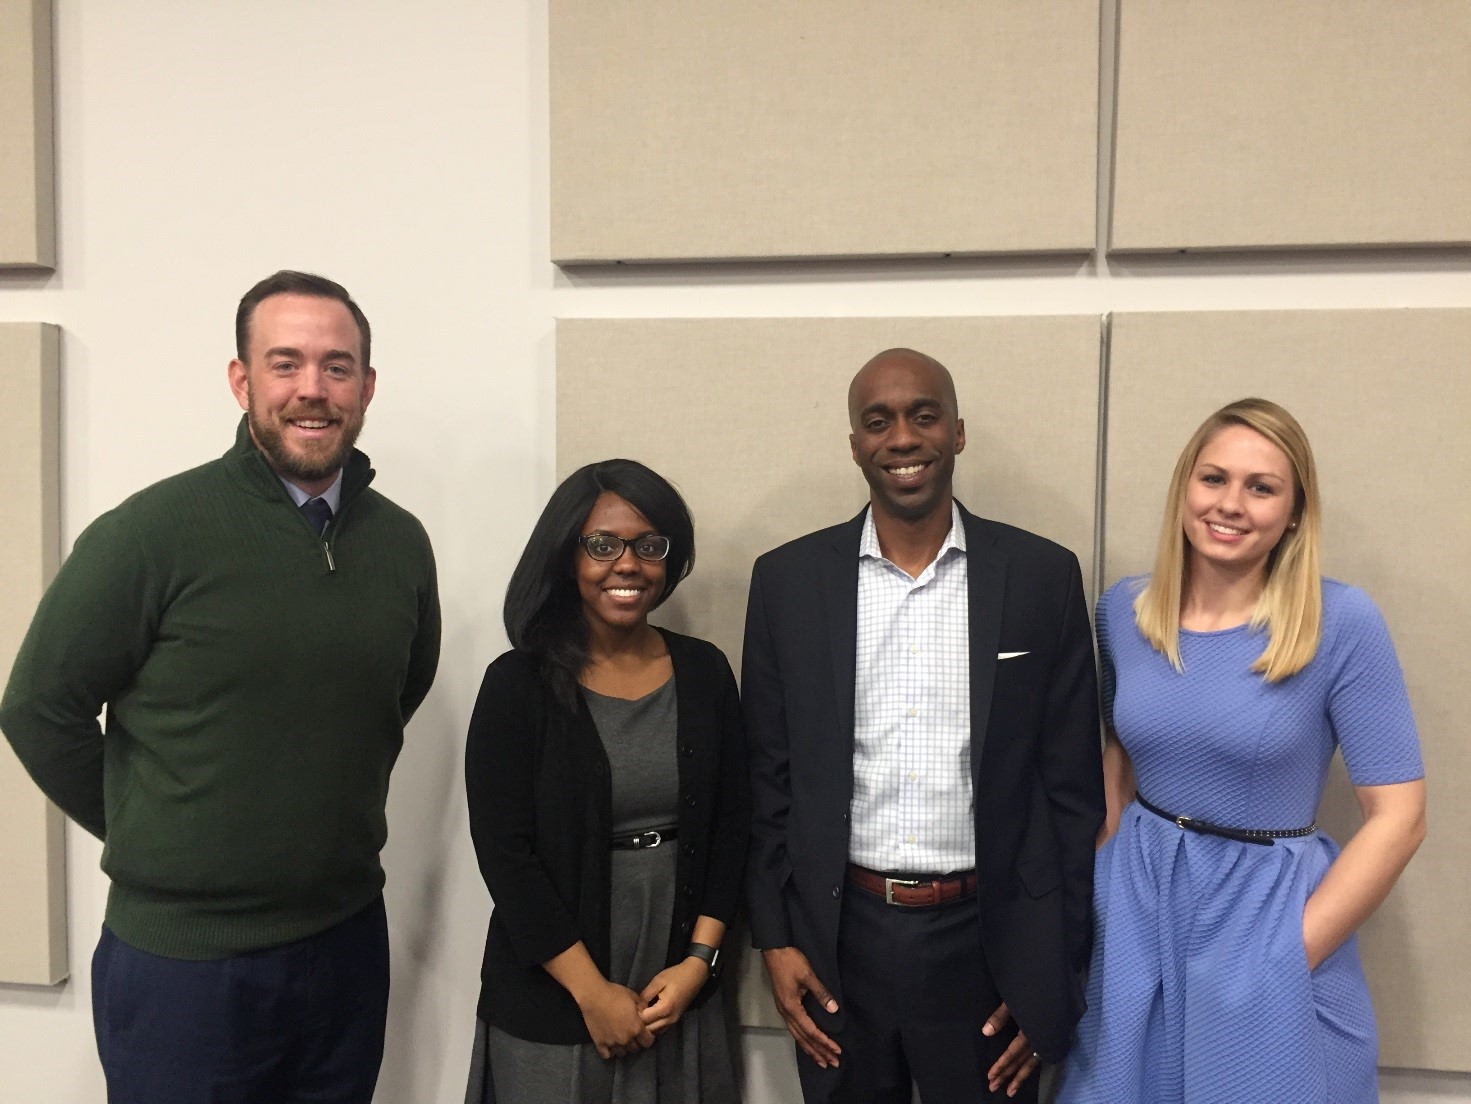 JMU alumni Dr. Ross Markle & Dr. Javarro Russell partner with current PhD students to impact the quality of higher education outcomes assessment